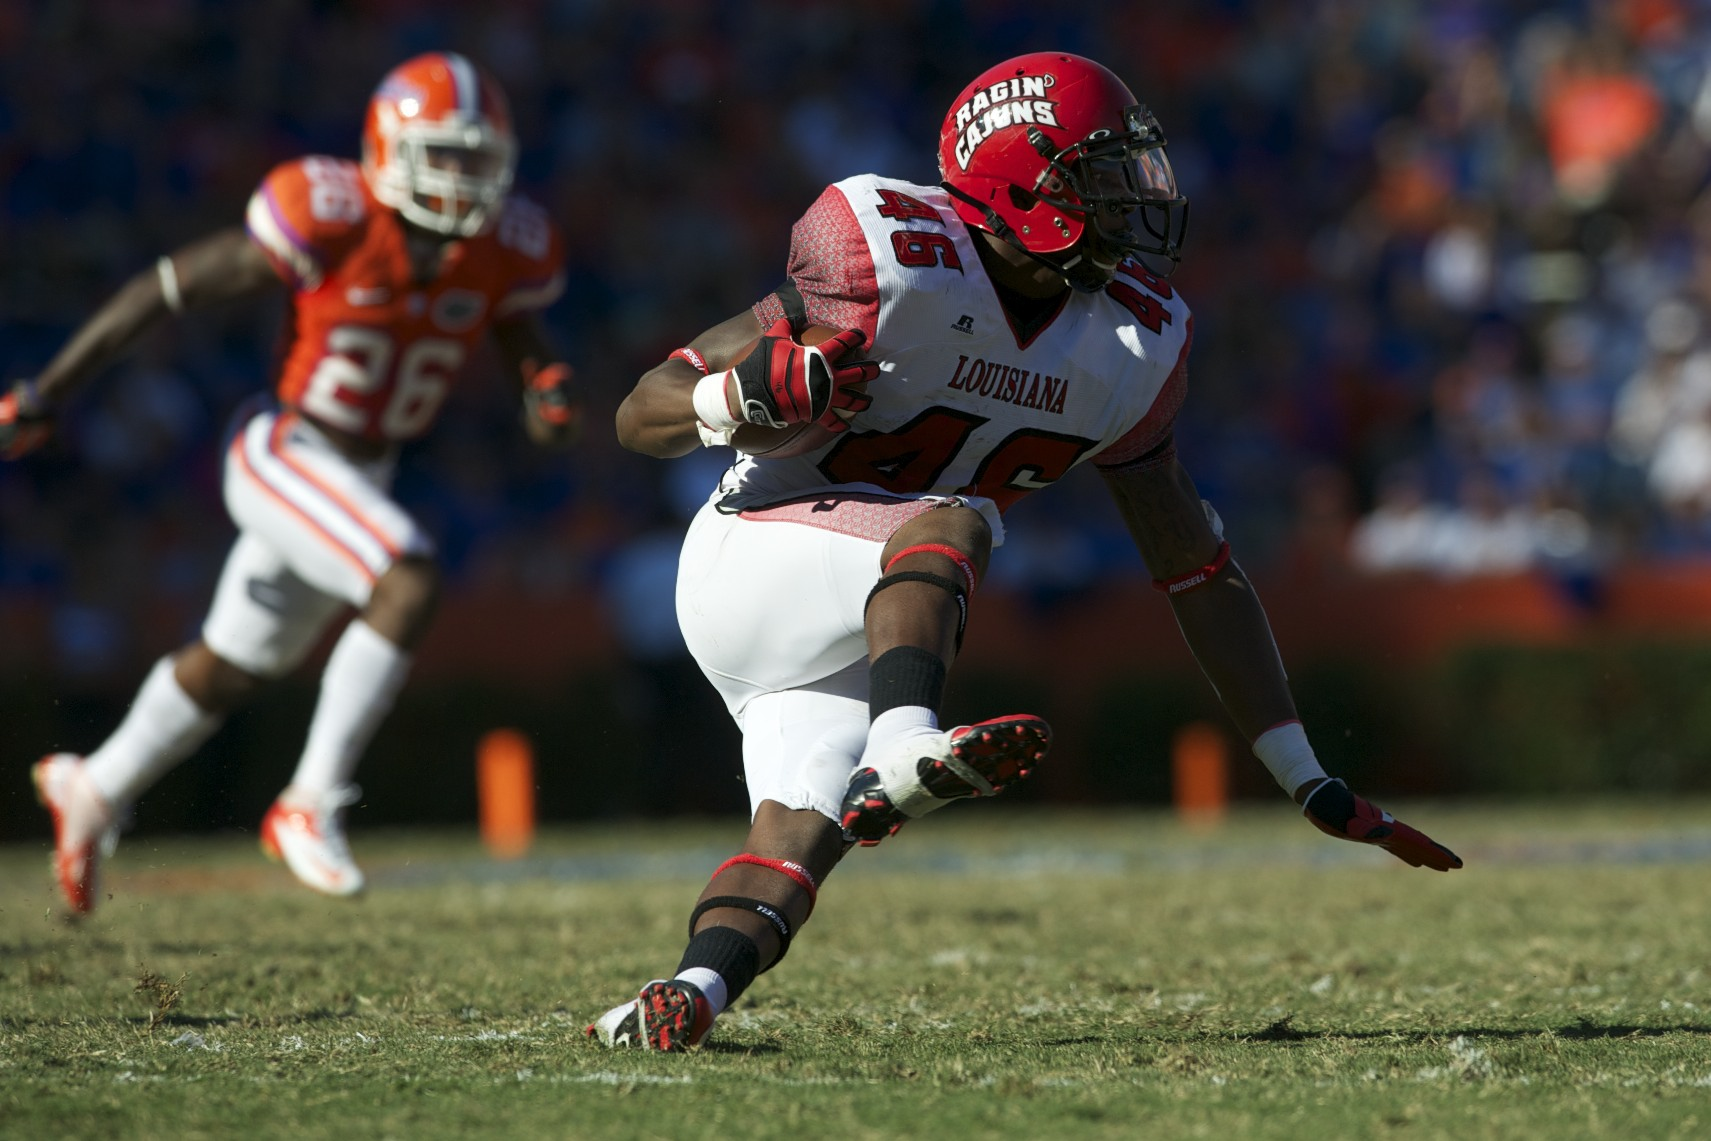 Runningback Alonzo Harris (46) gets a first down for Louisiana's Ragin' Cajuns in the second half of Saturday's game.